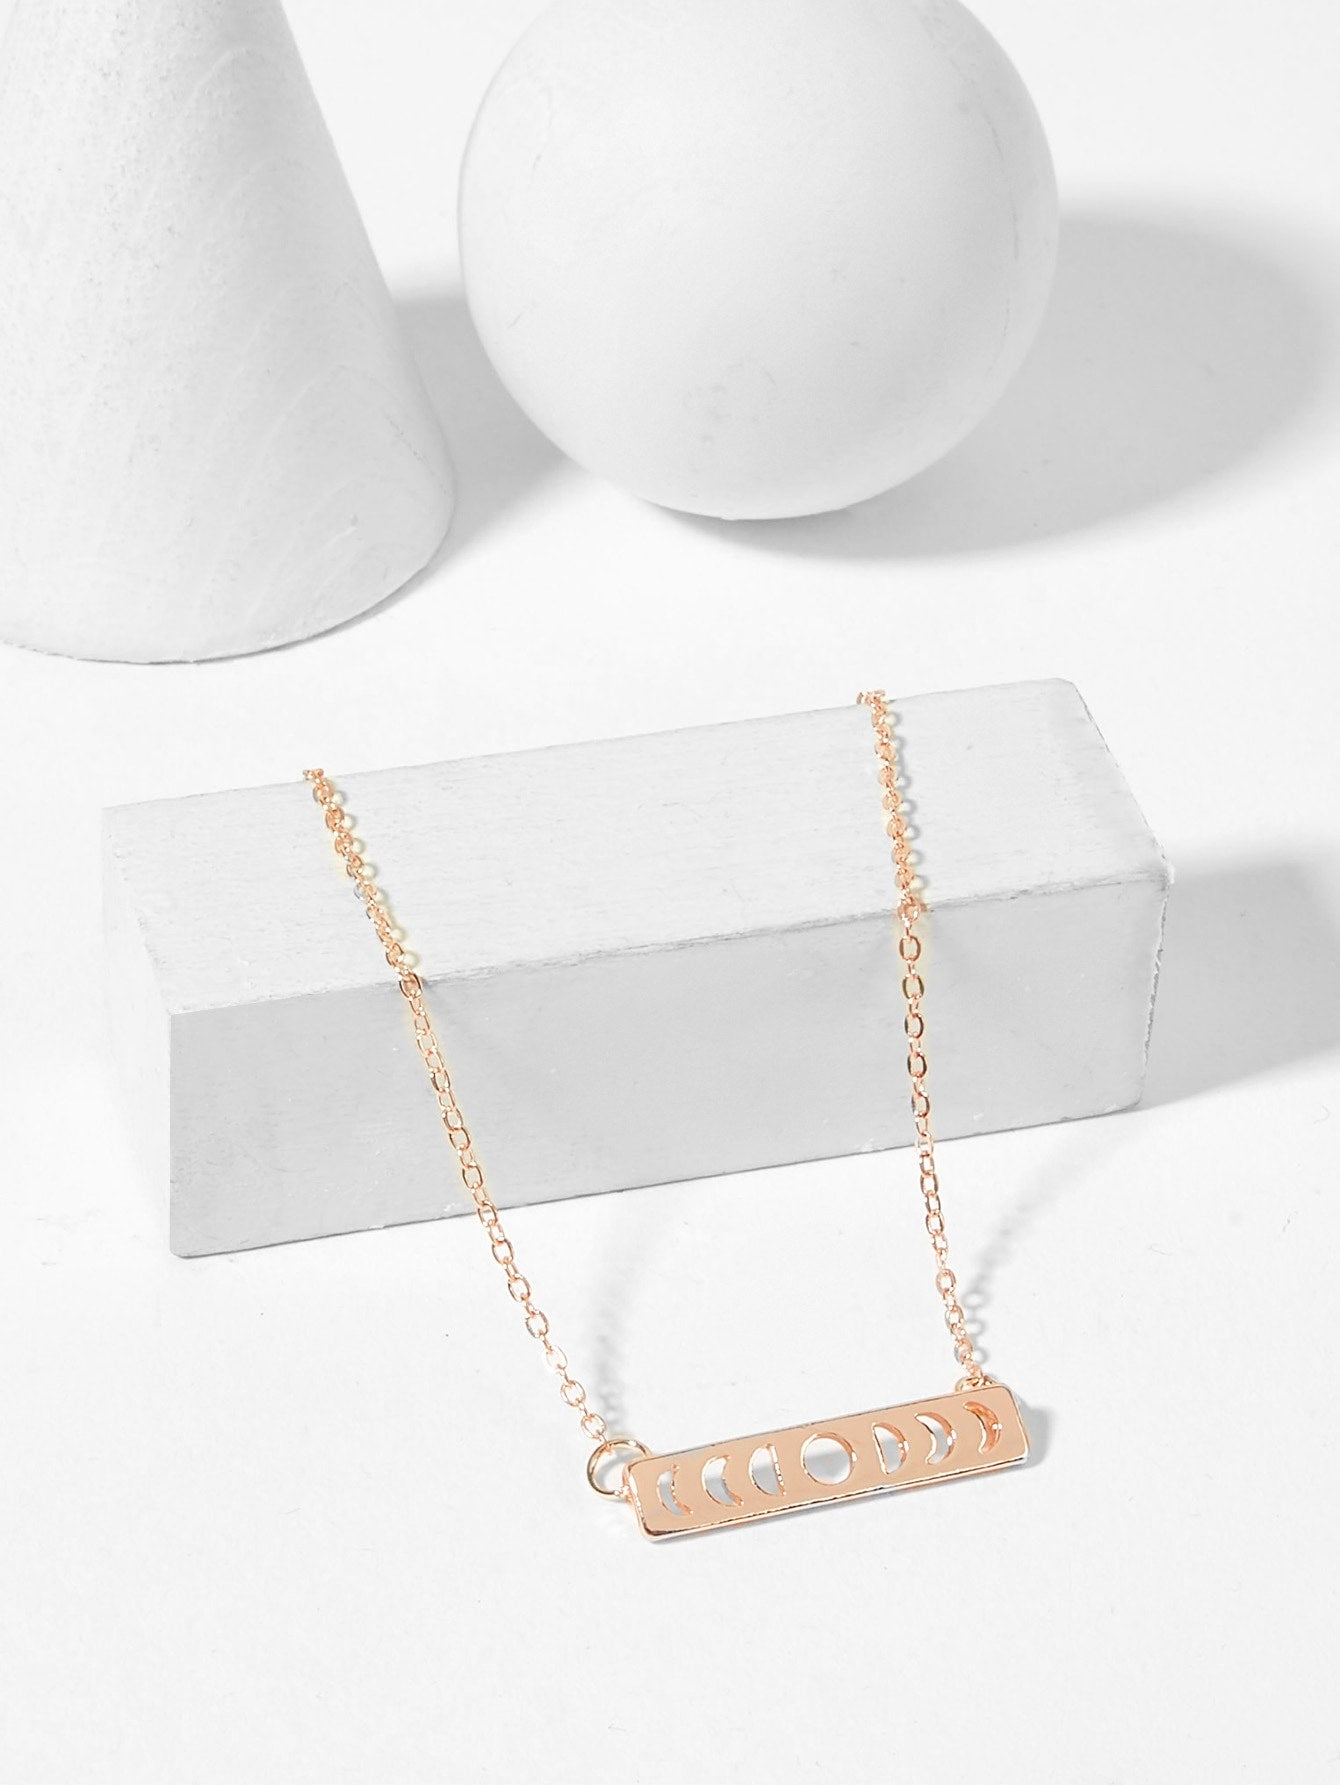 Golden Hollow Bar Pendant Chain Necklace